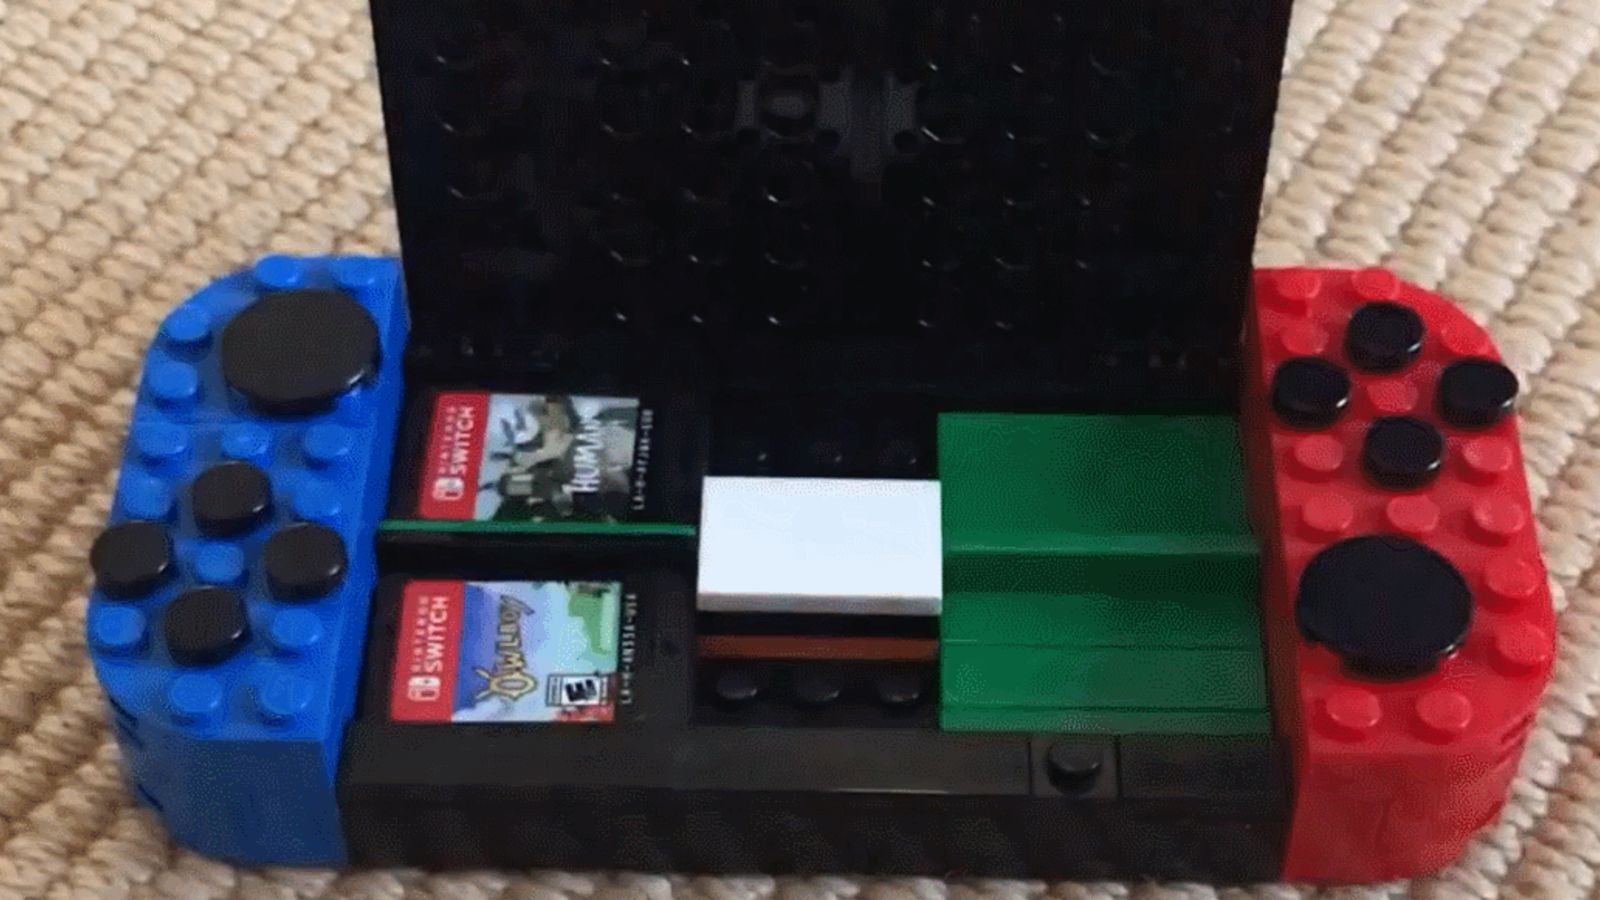 Nifty MOC Featured on Reddit: Nintendo Switch-Shaped Game